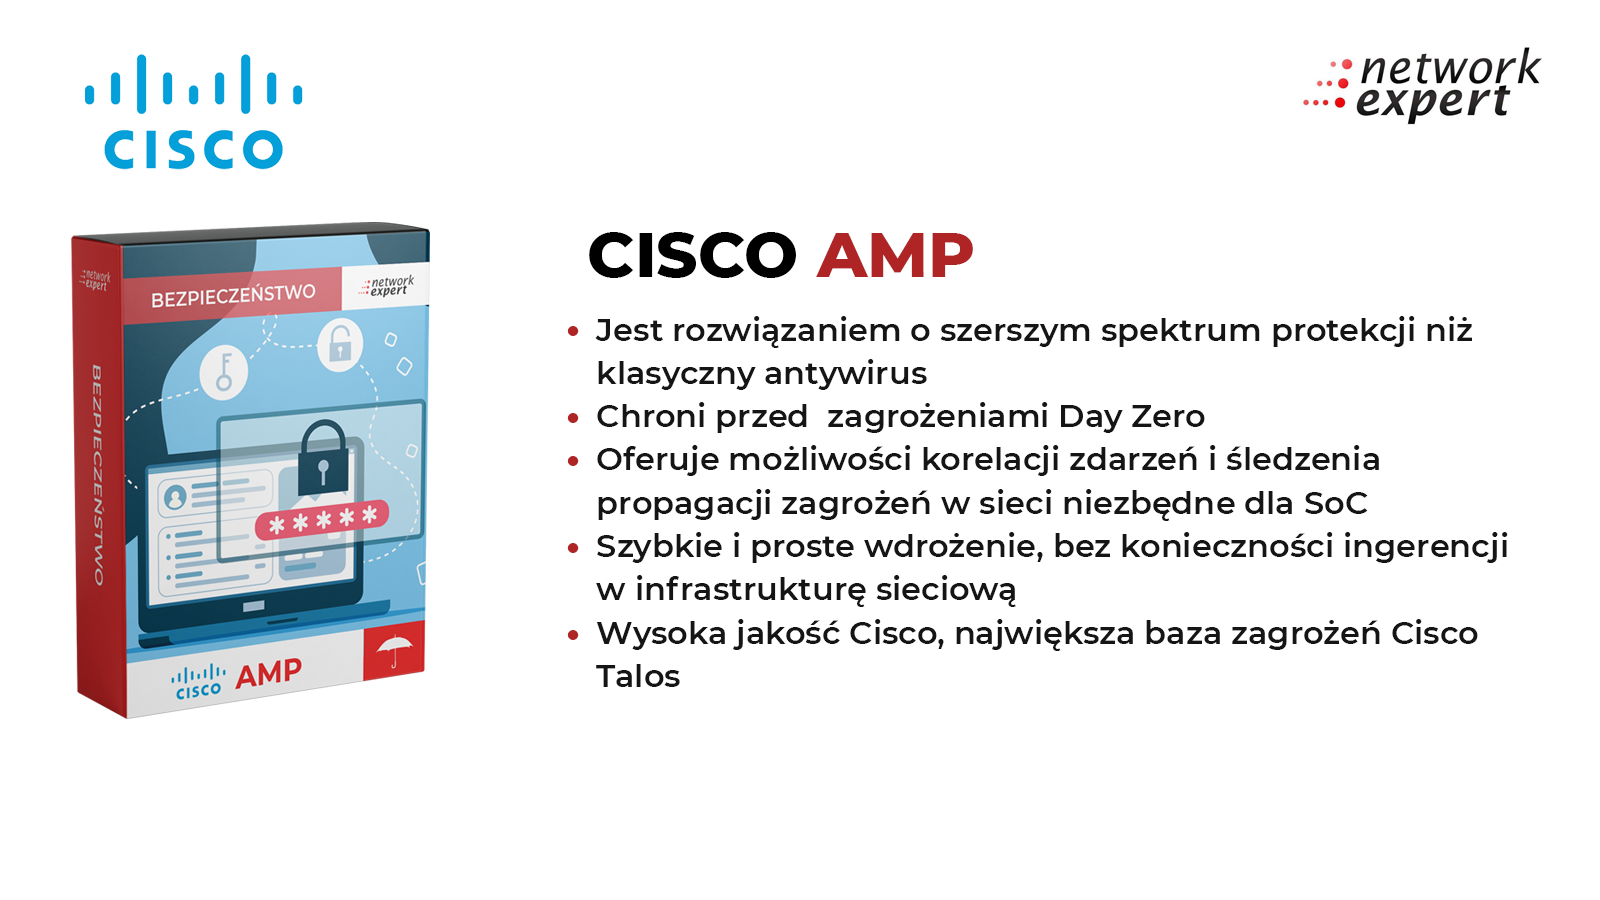 AMP Cisco co to jest